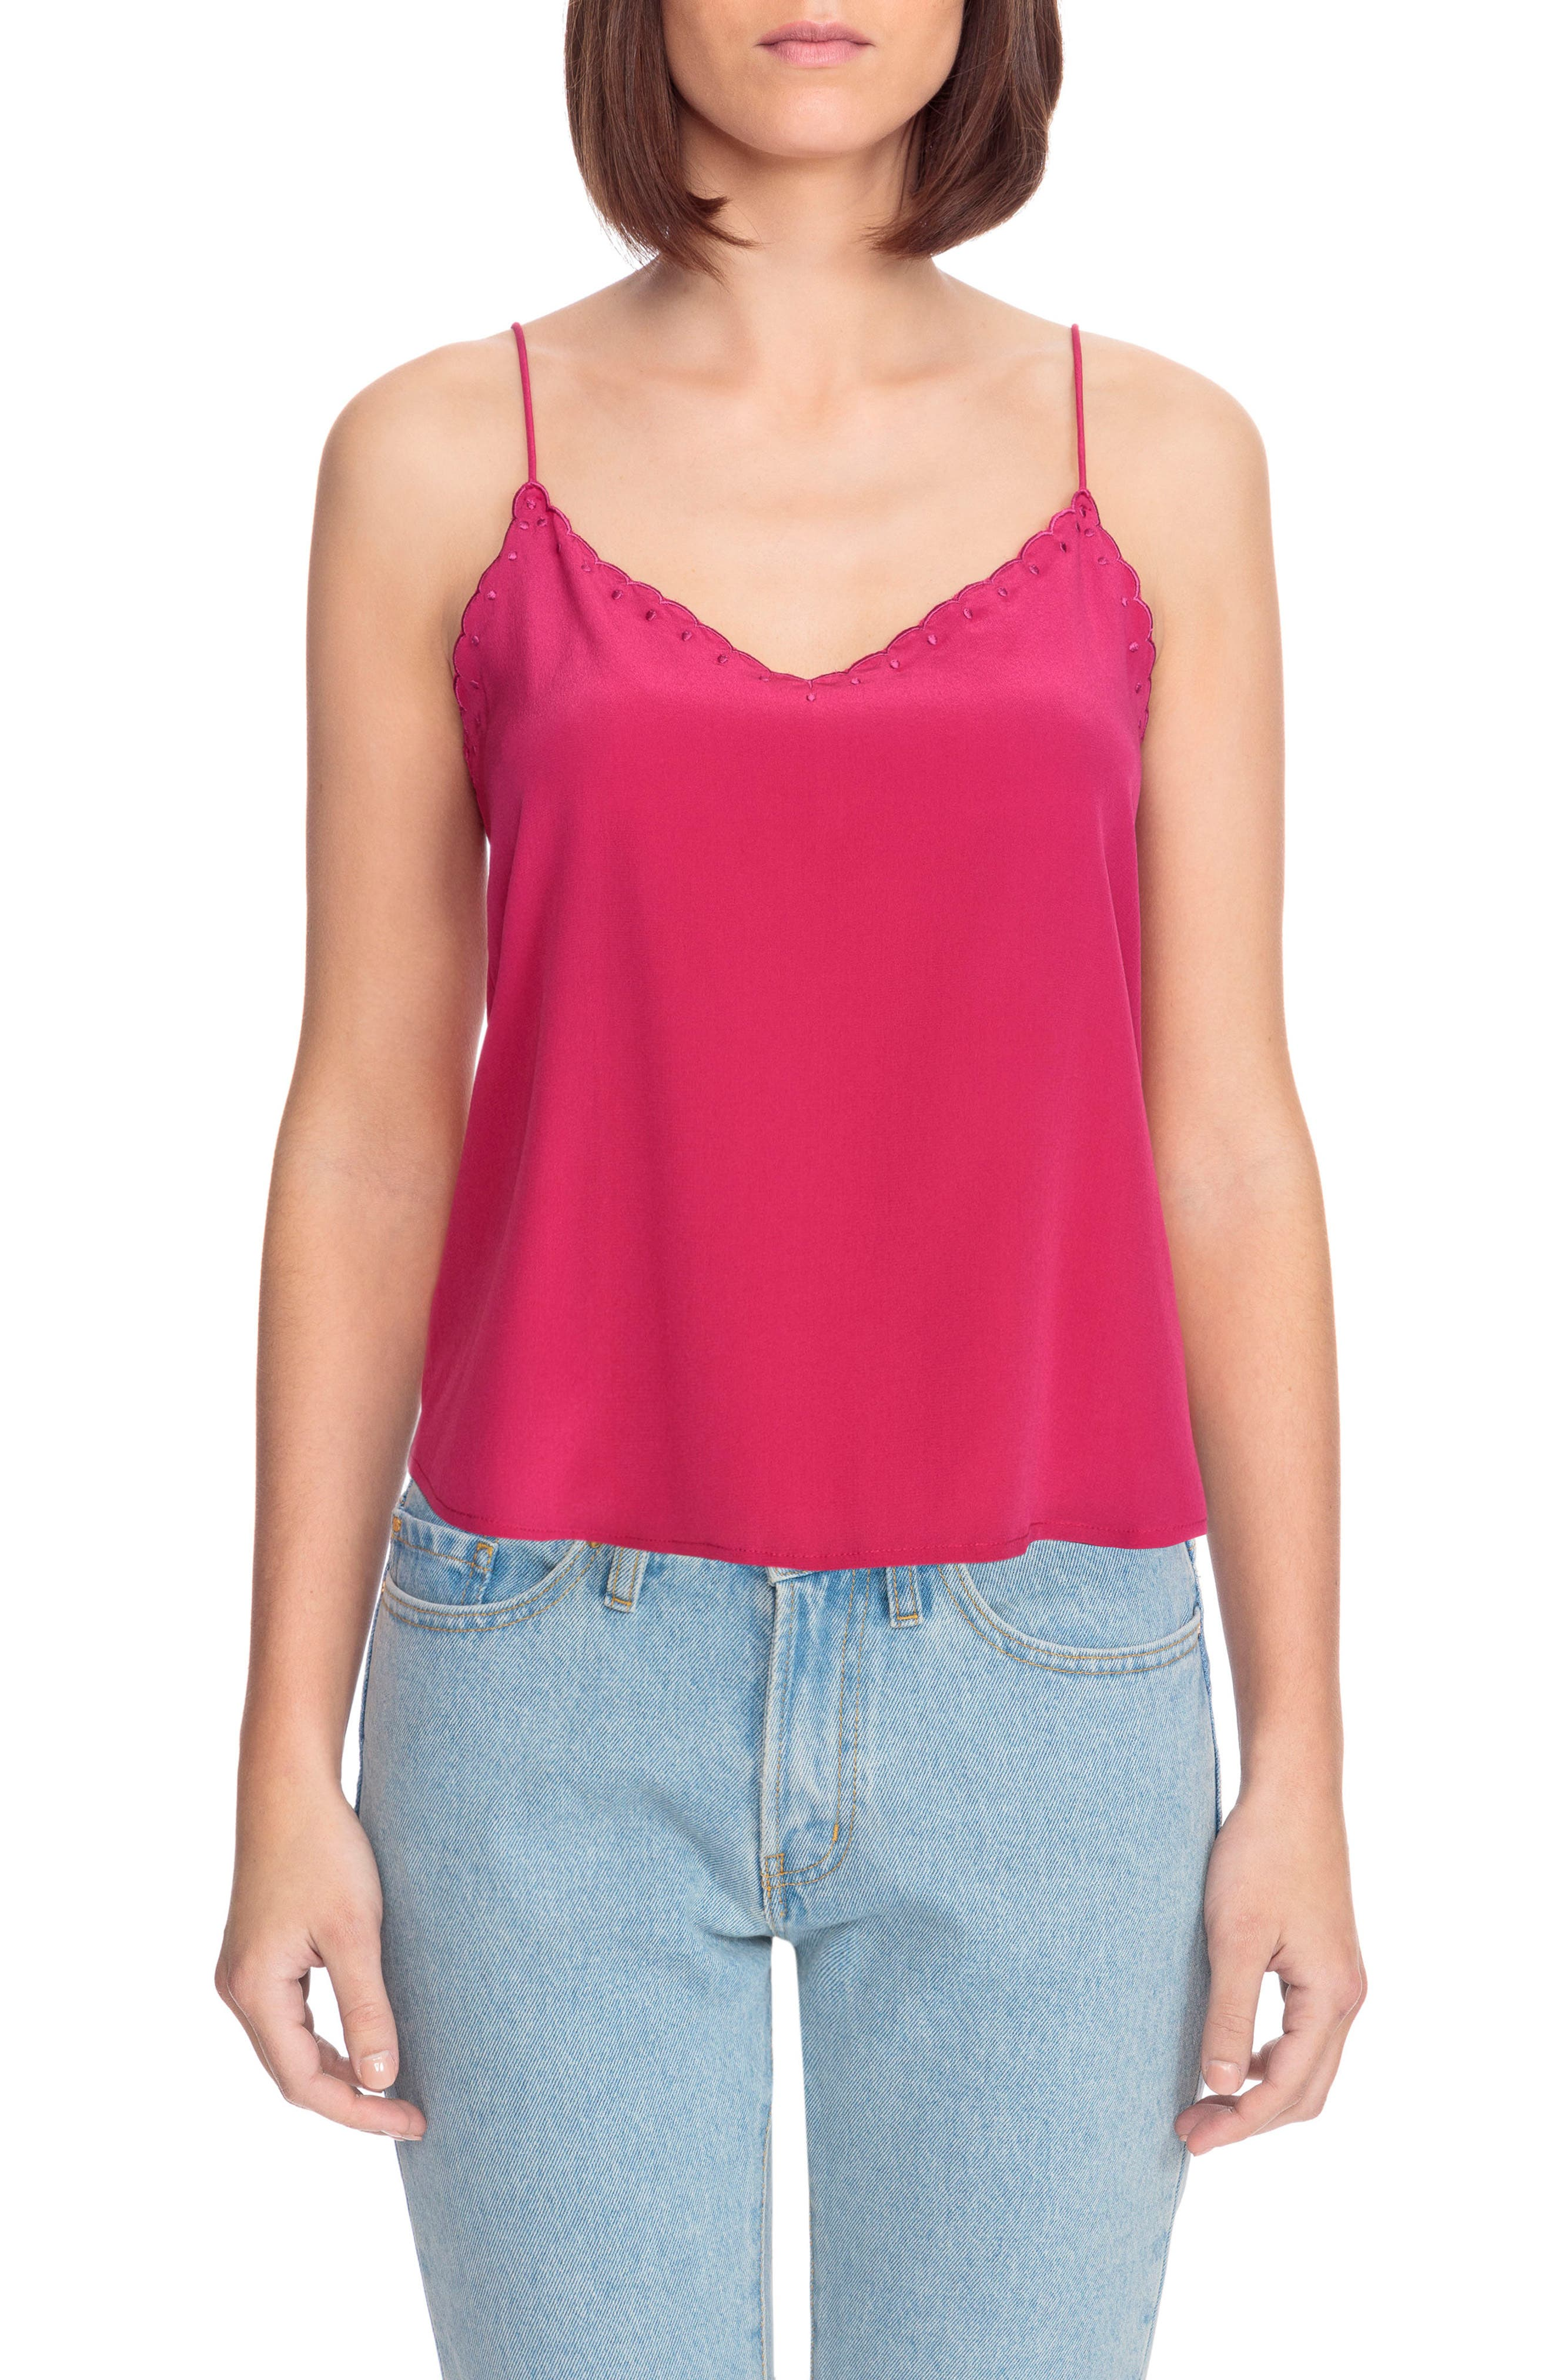 Athenee Scalloped Silk Camisole,                             Main thumbnail 1, color,                             Bright Pink